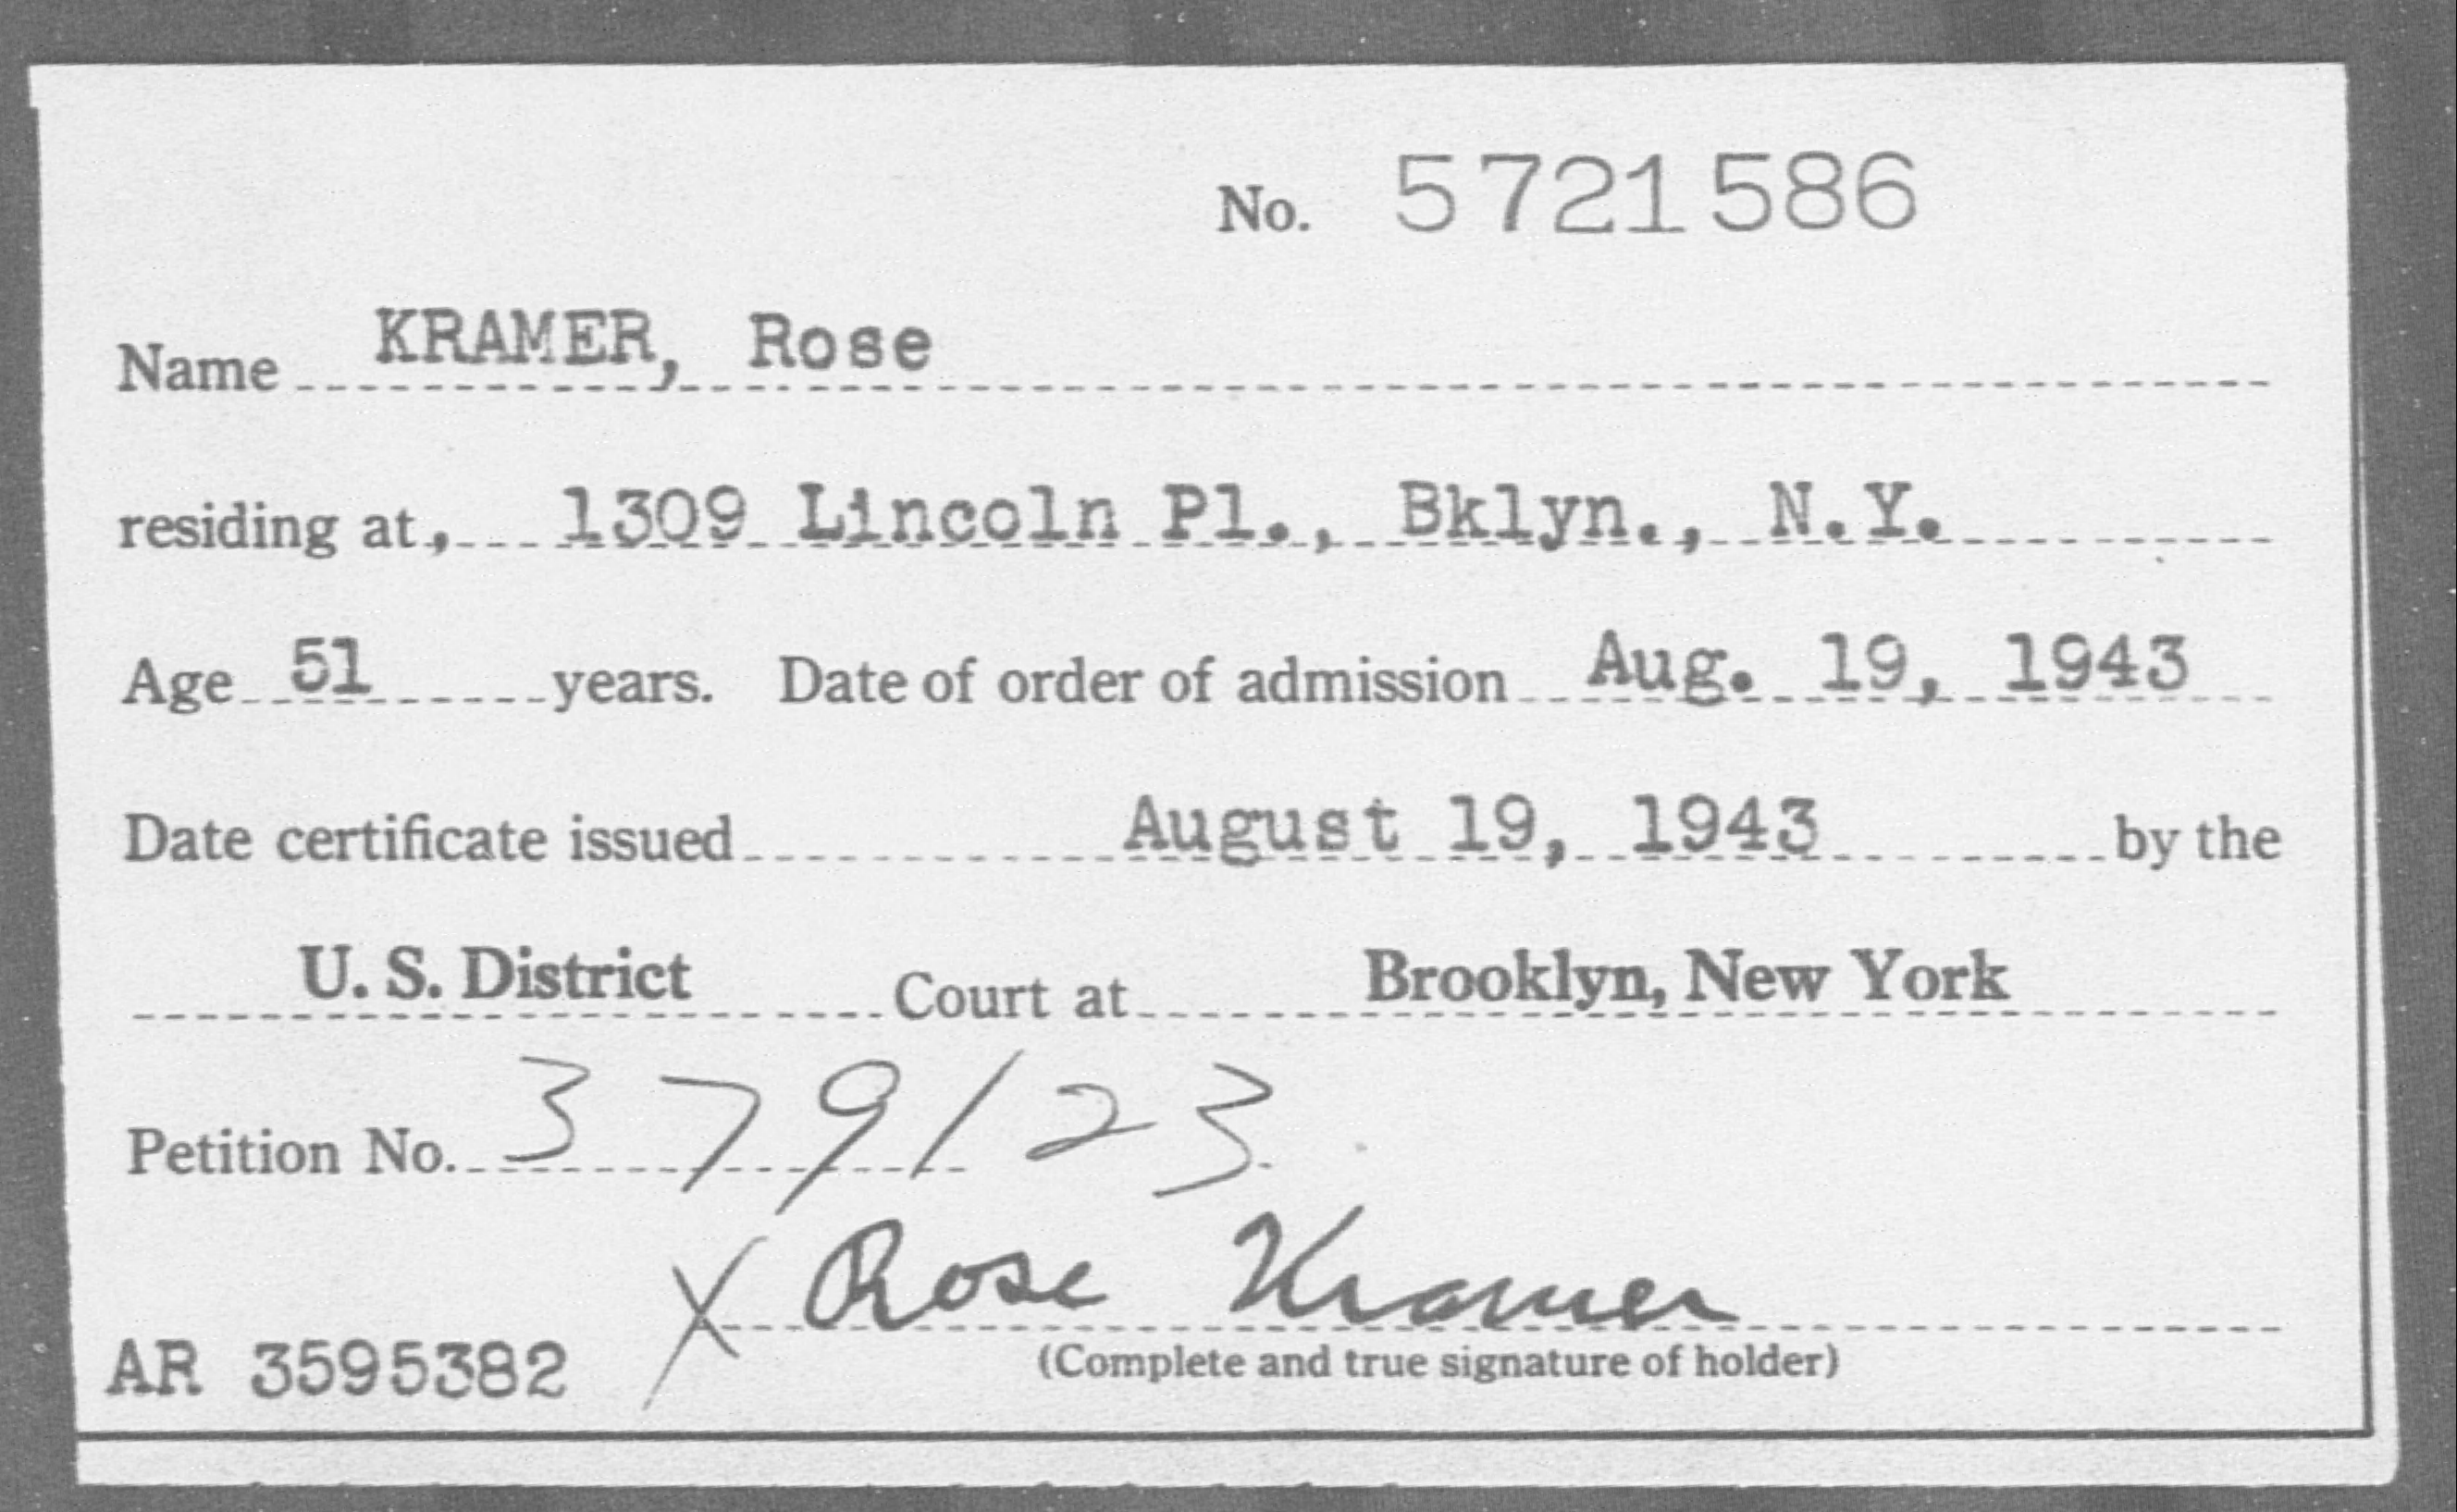 KRAMER, Rose - Born: [BLANK], Naturalized: 1943